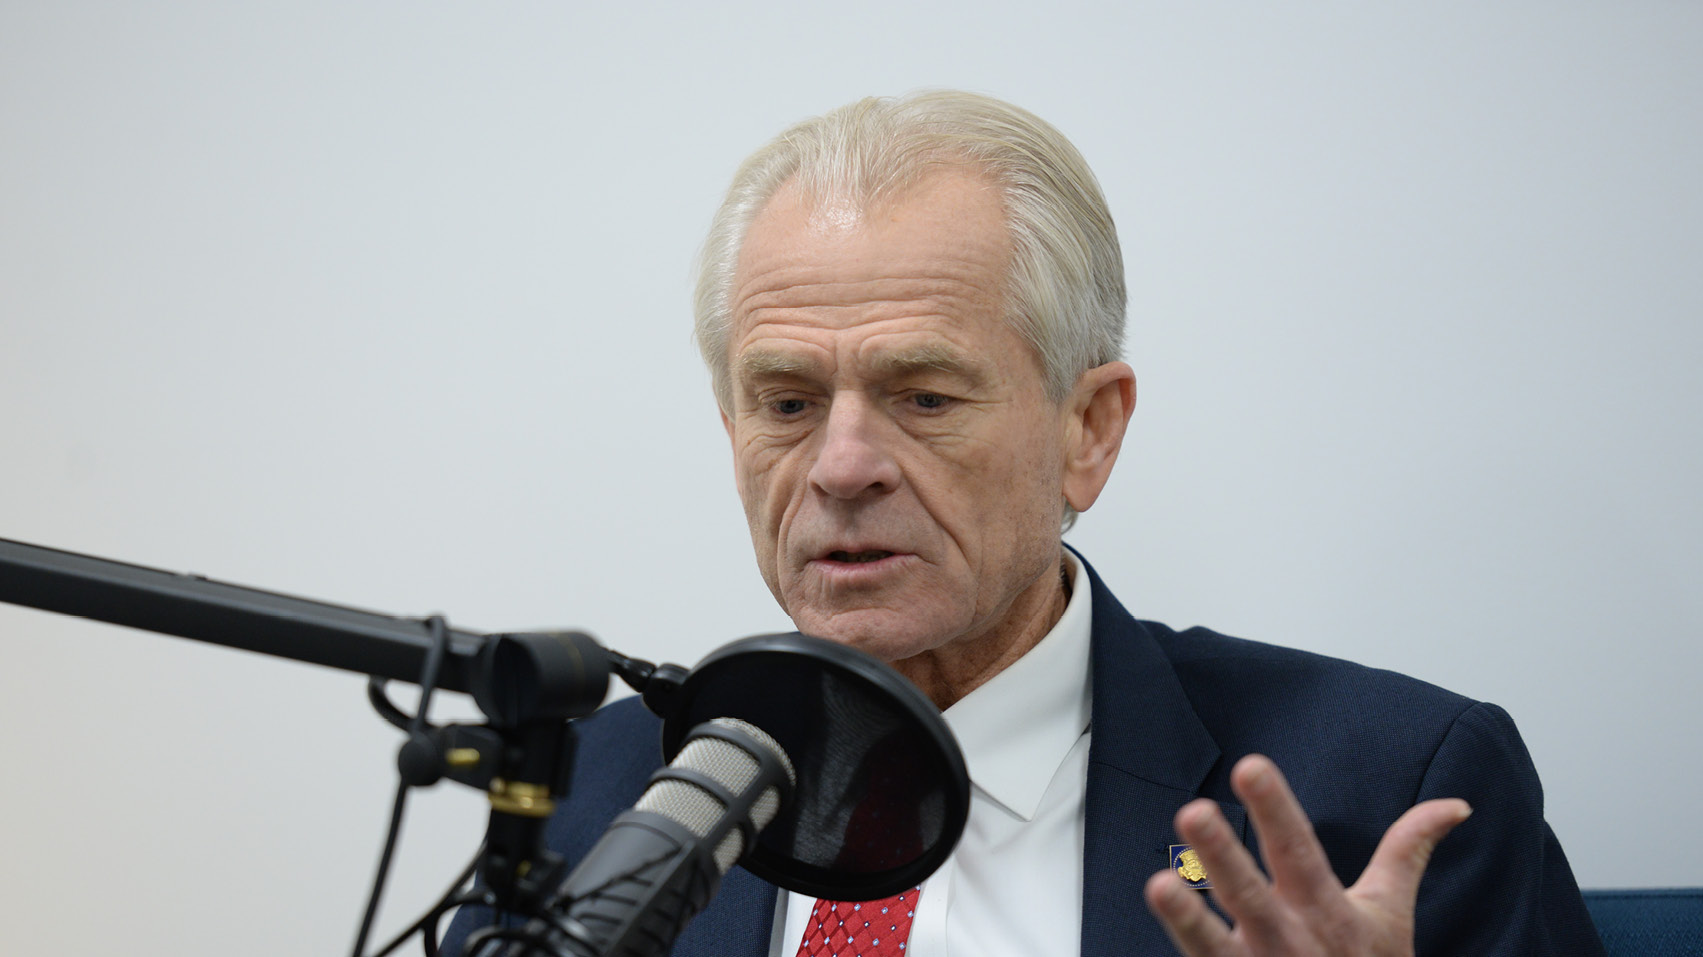 Peter Navarro discusses the Trump administration's approach to economic competition and its focus on blue-collar workers and manufacturing.